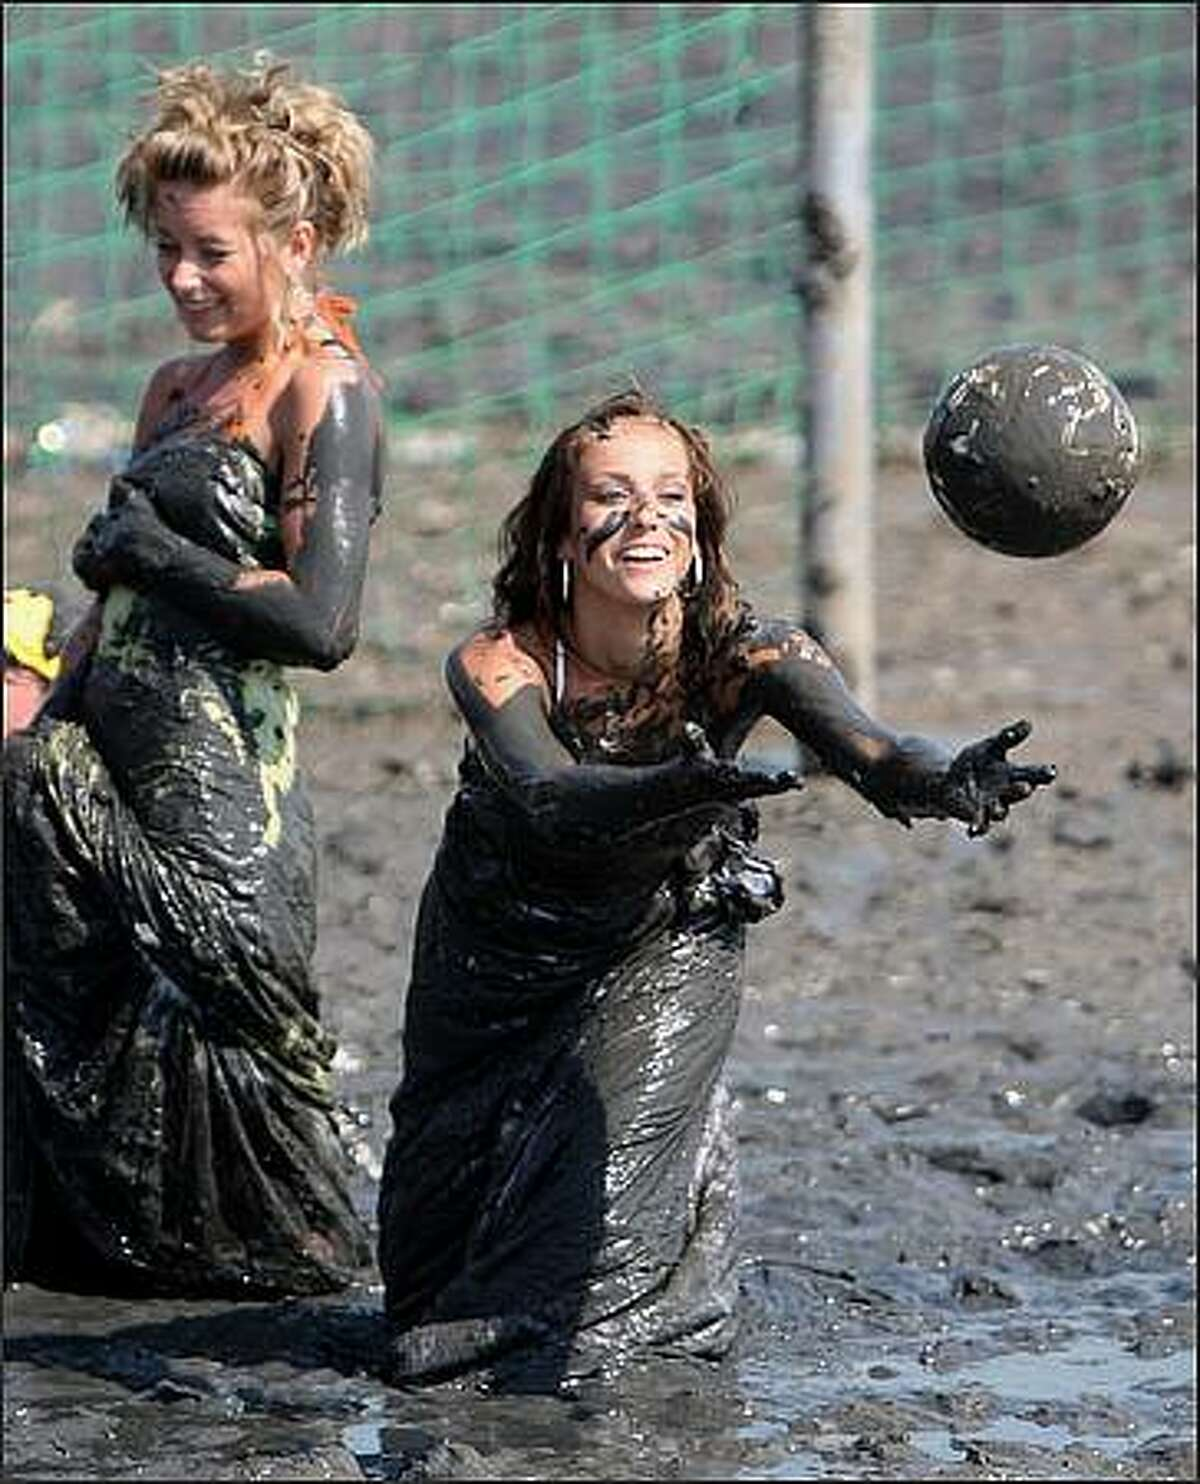 Members play football during the Mudflat Olympic Games in Brunsbuettel, Germany. (Photo by Friedemann Vogel/Bongarts/Getty Images)